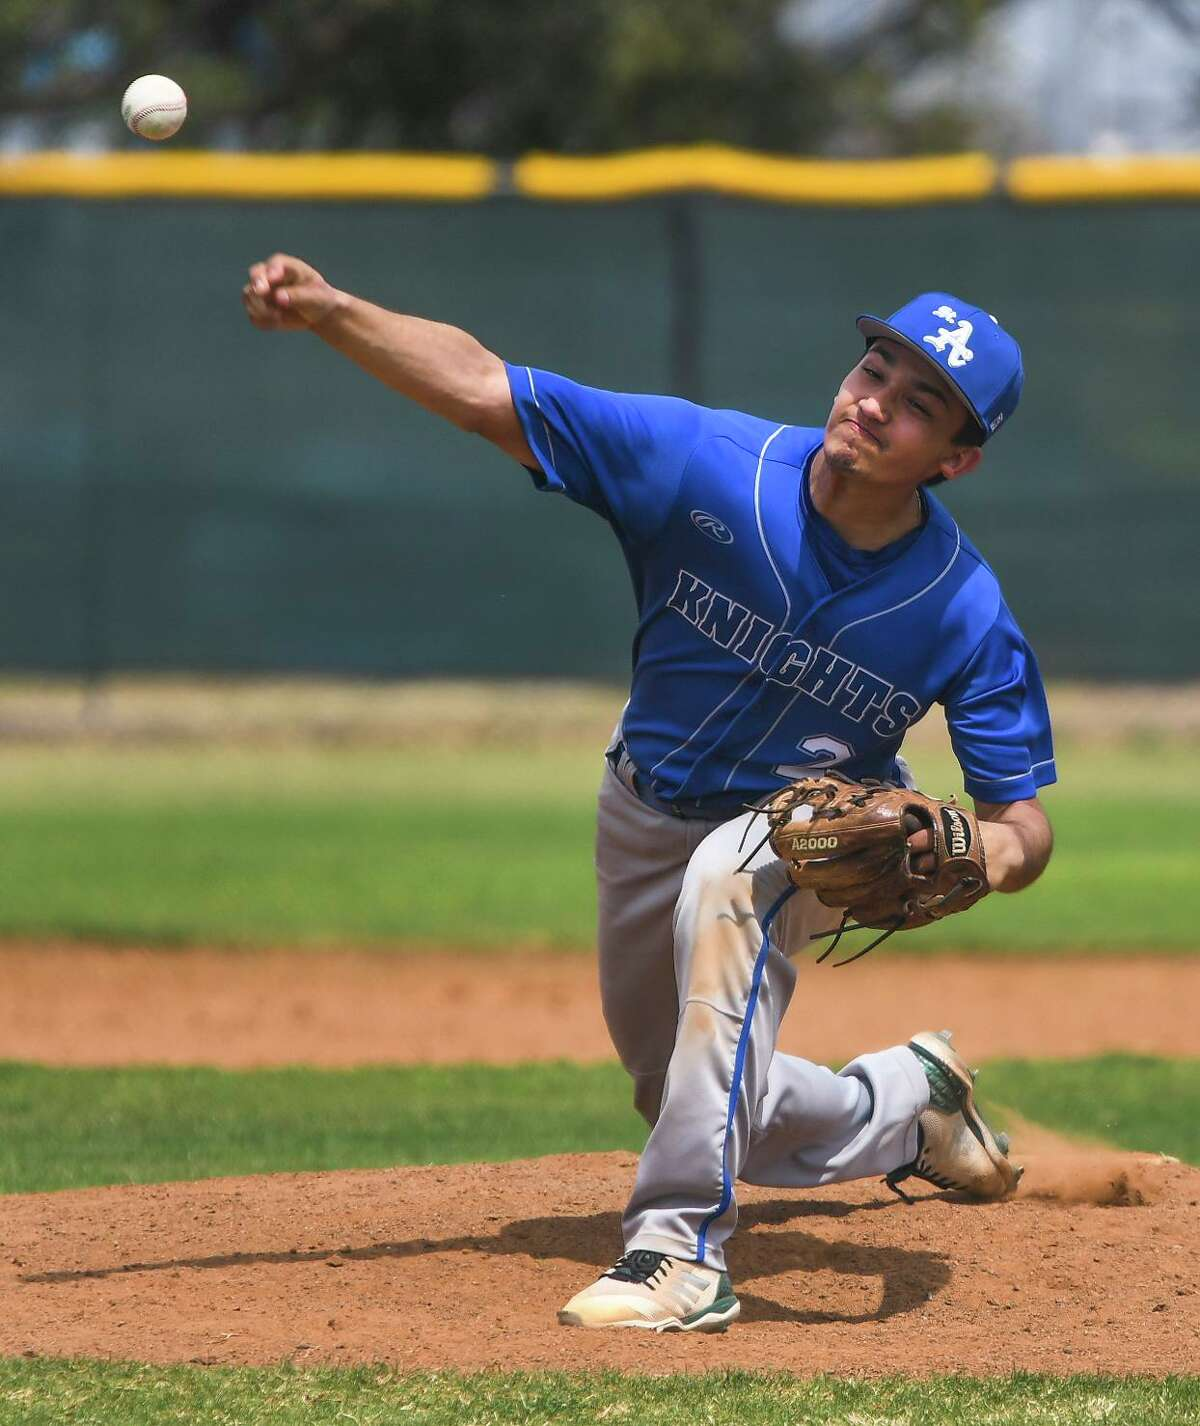 Andres Pescina was one of six St. Augustine players to earn all-district honors.